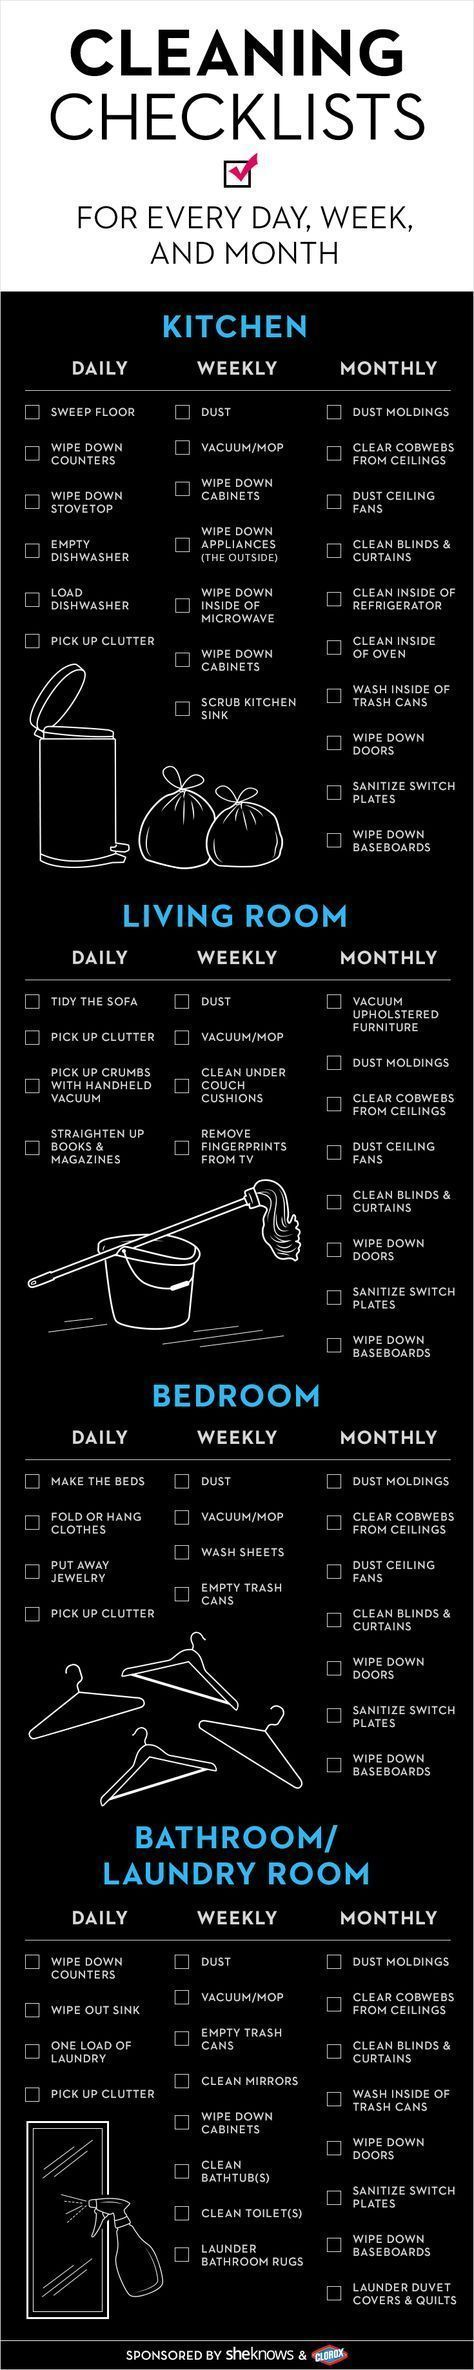 Best Spring Cleaning Tips 109 best spring cleaning tips images on pinterest | cleaning hacks